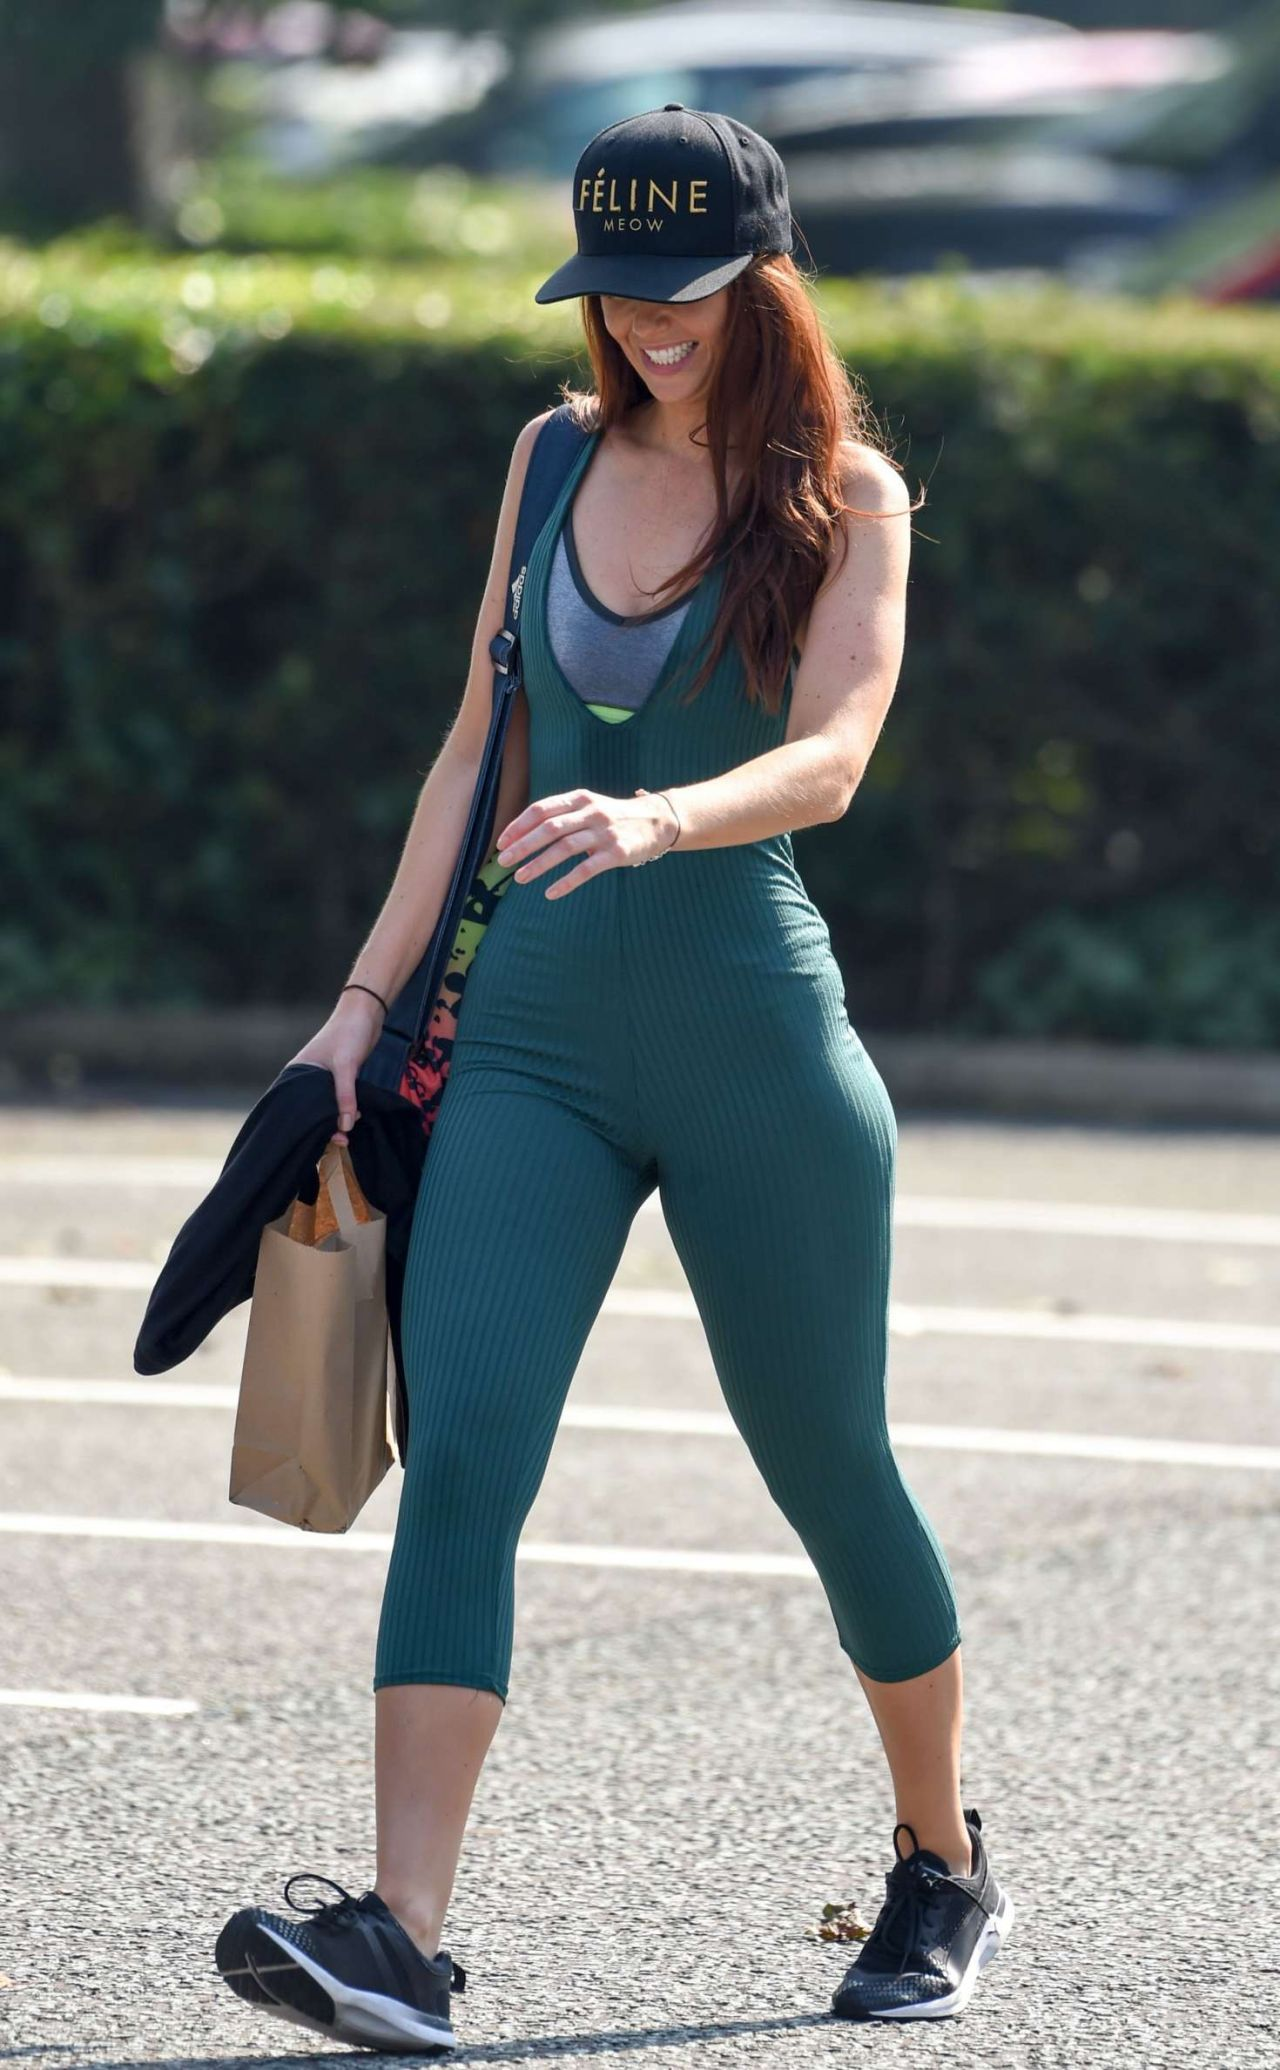 Jennifer Metcalfe In A Body Suit 9  25   2016